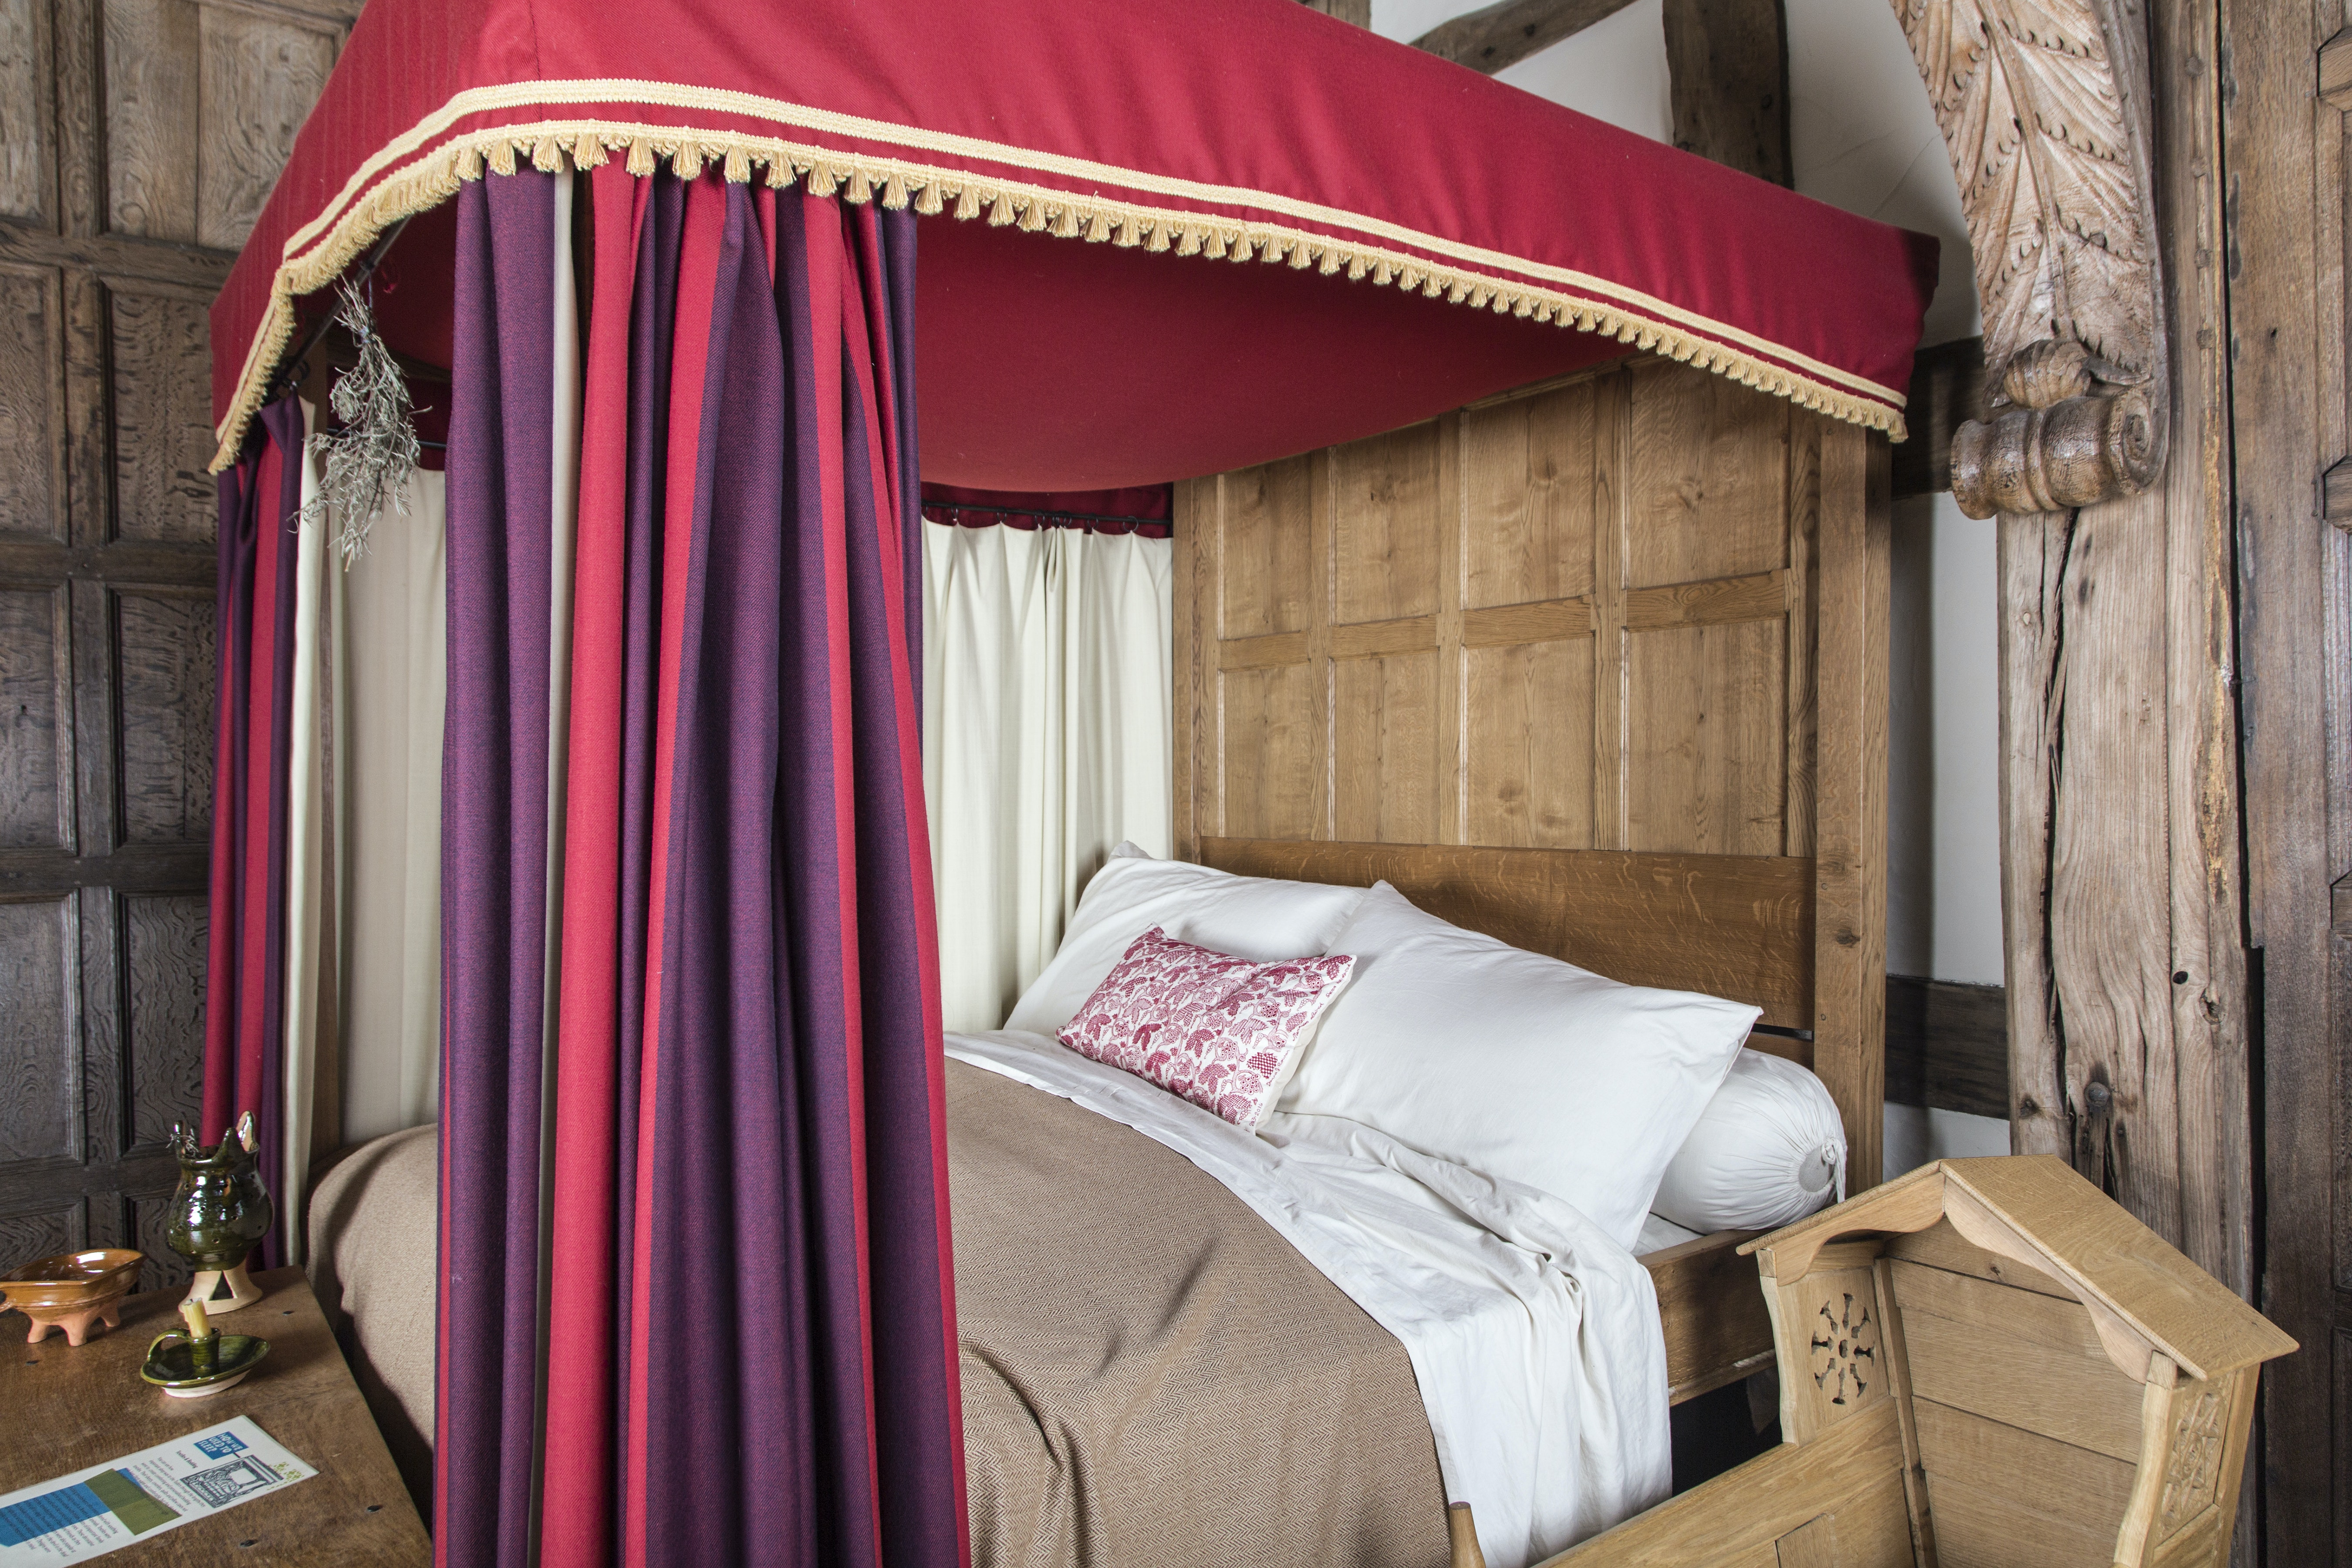 Replica of a Tudor four-poster bed, Little Moreton Hall. © The National Trust, Author provided